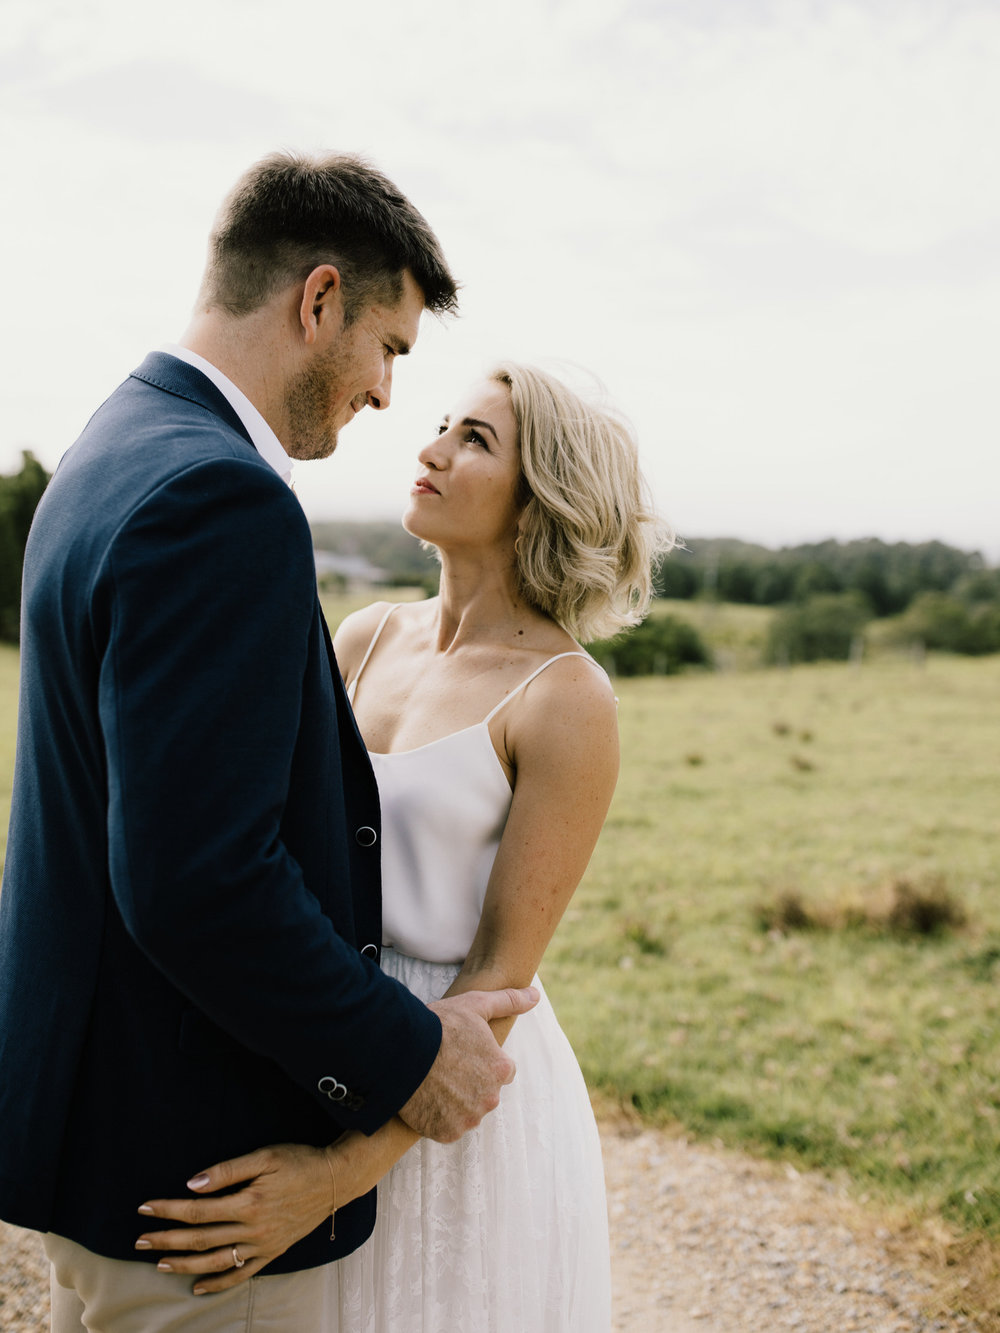 Kate & Lucas - Byron View Farm